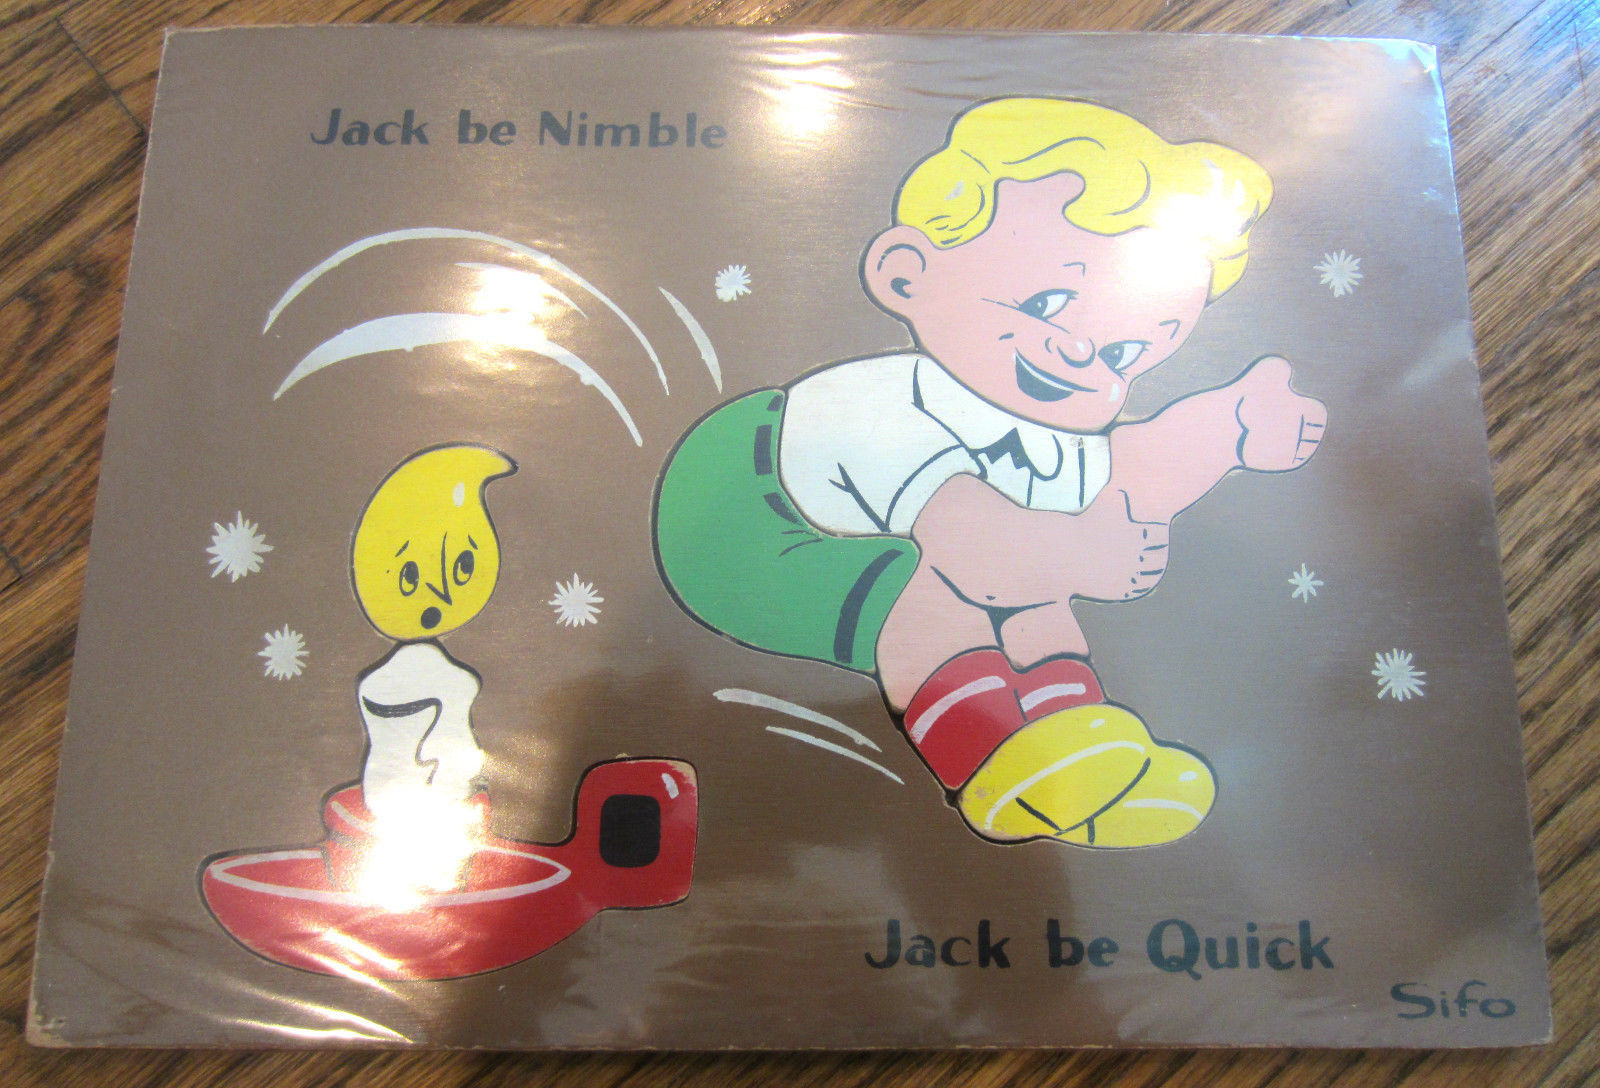 sifo vintage wooden puzzle jack be nimble jack be quick jump over candle stick ebay. Black Bedroom Furniture Sets. Home Design Ideas